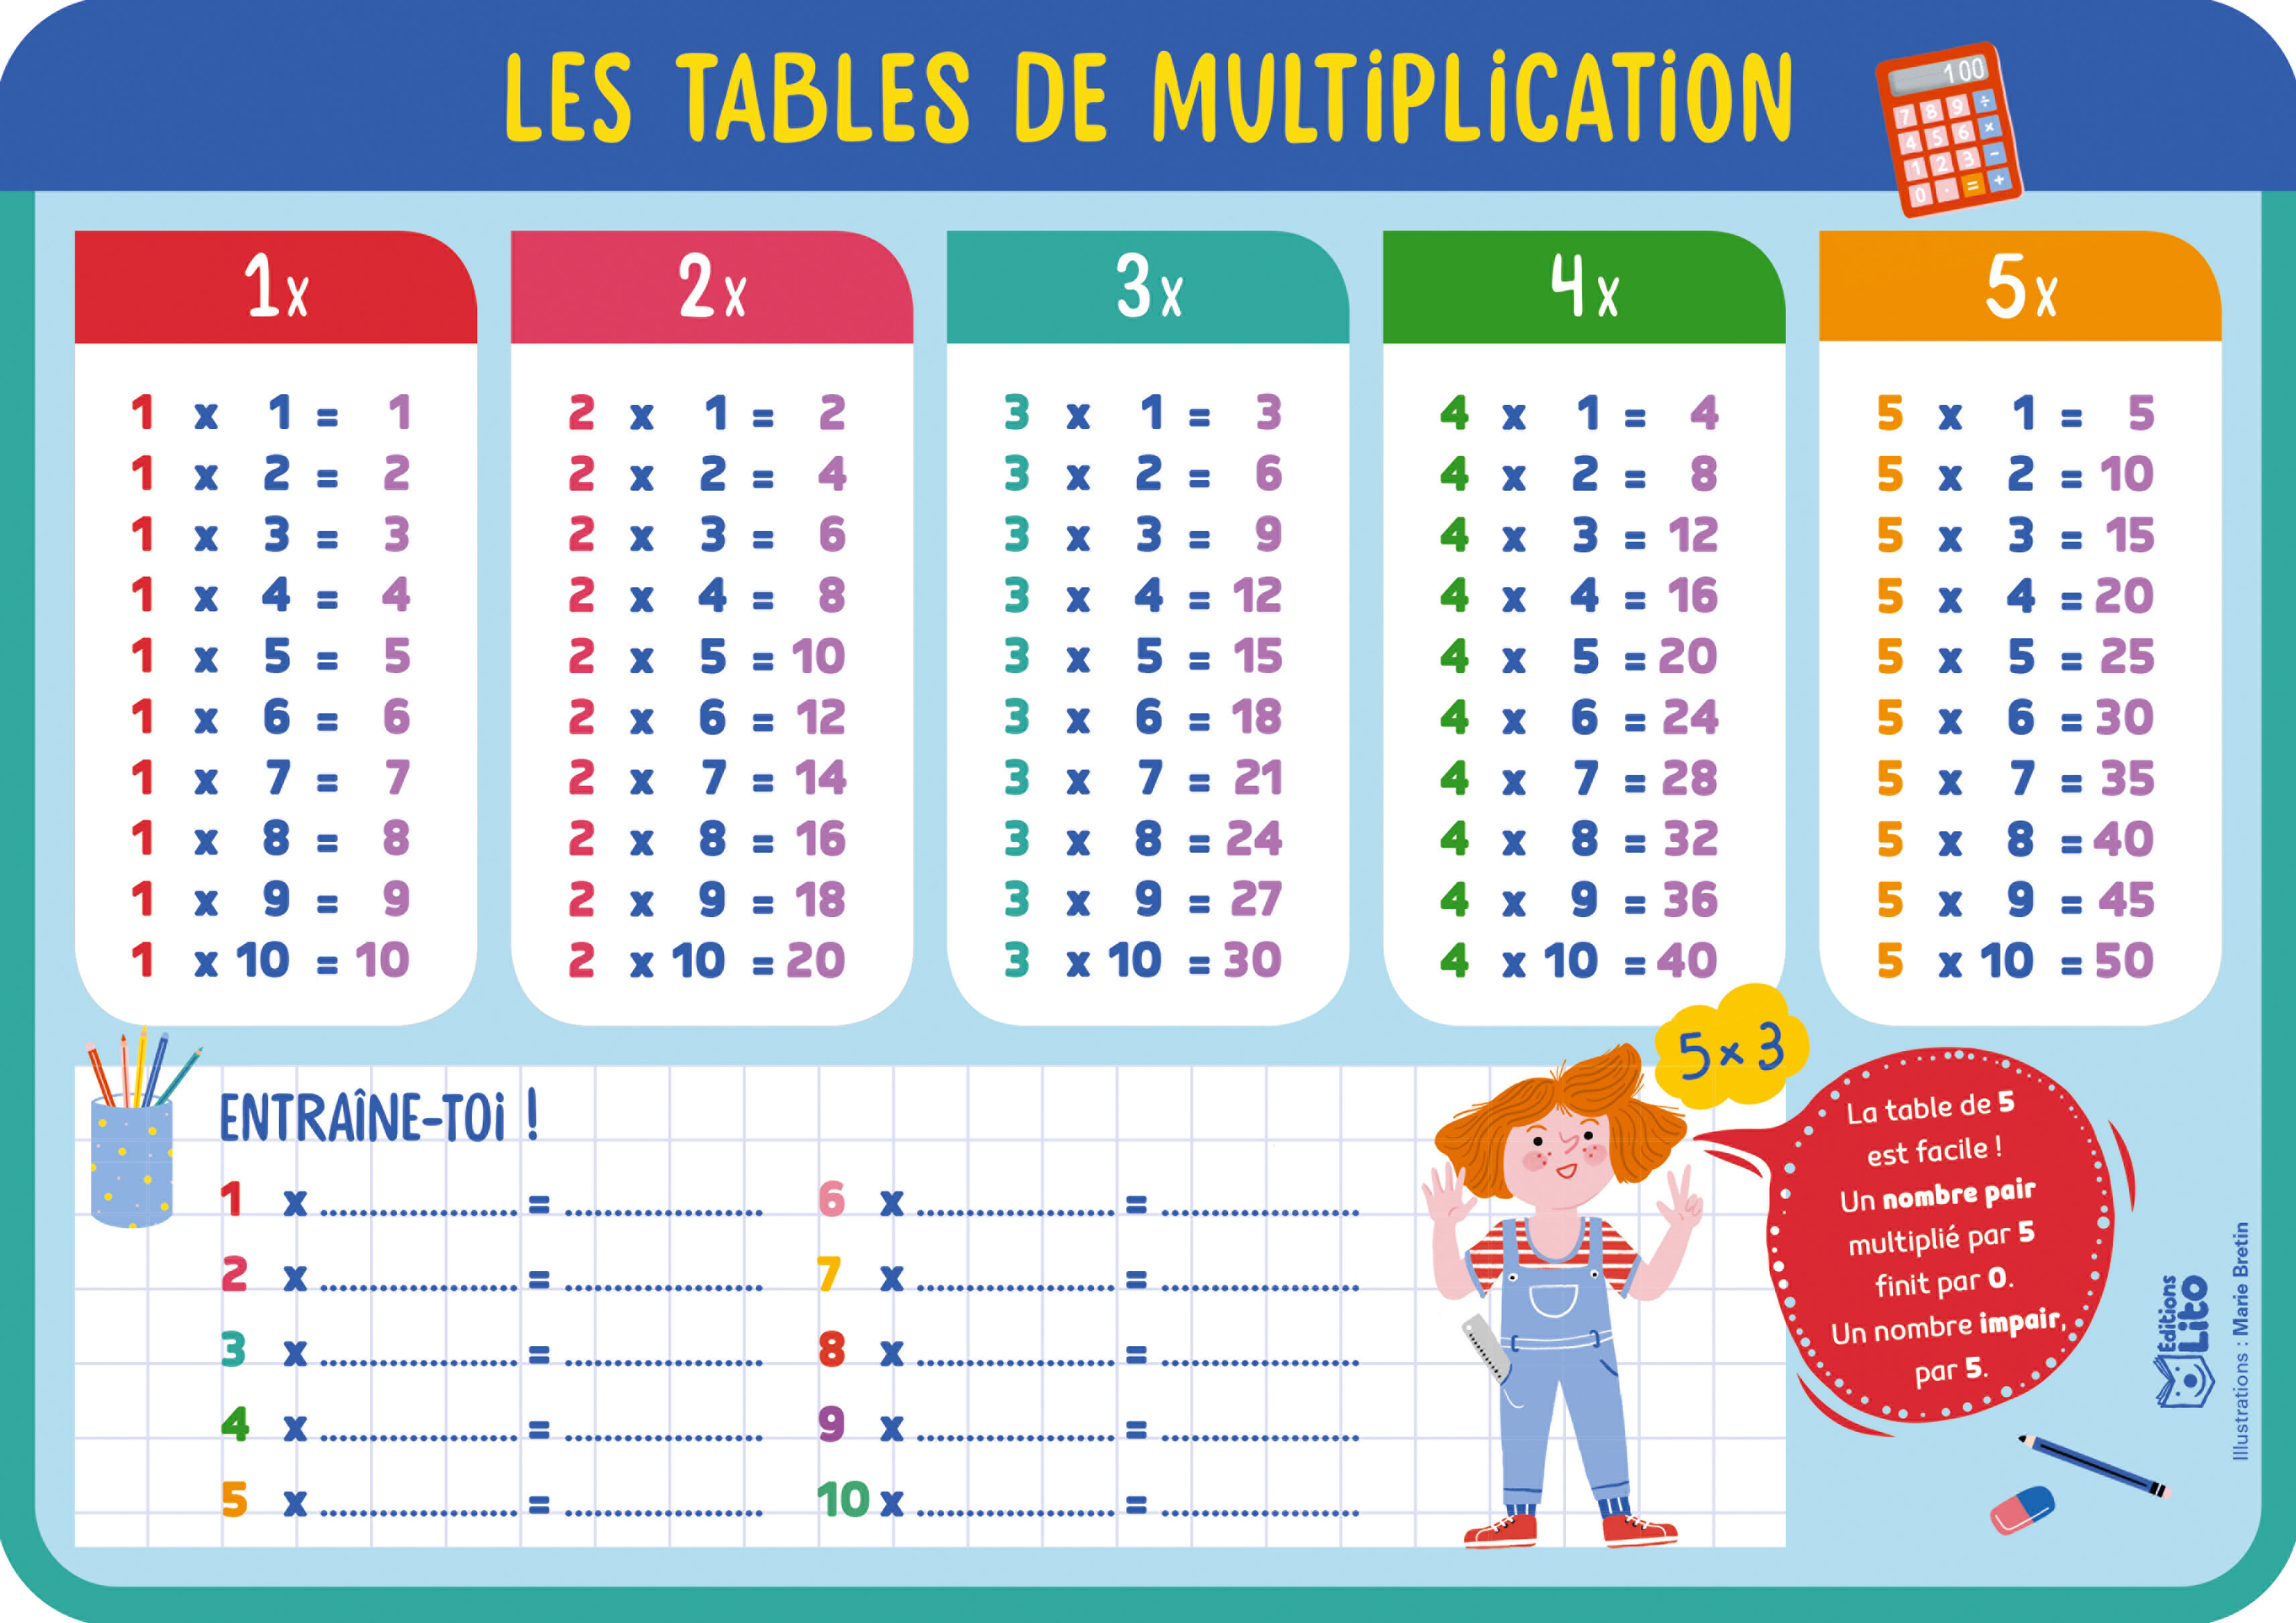 MES ARDOISES MULTIPLICATION